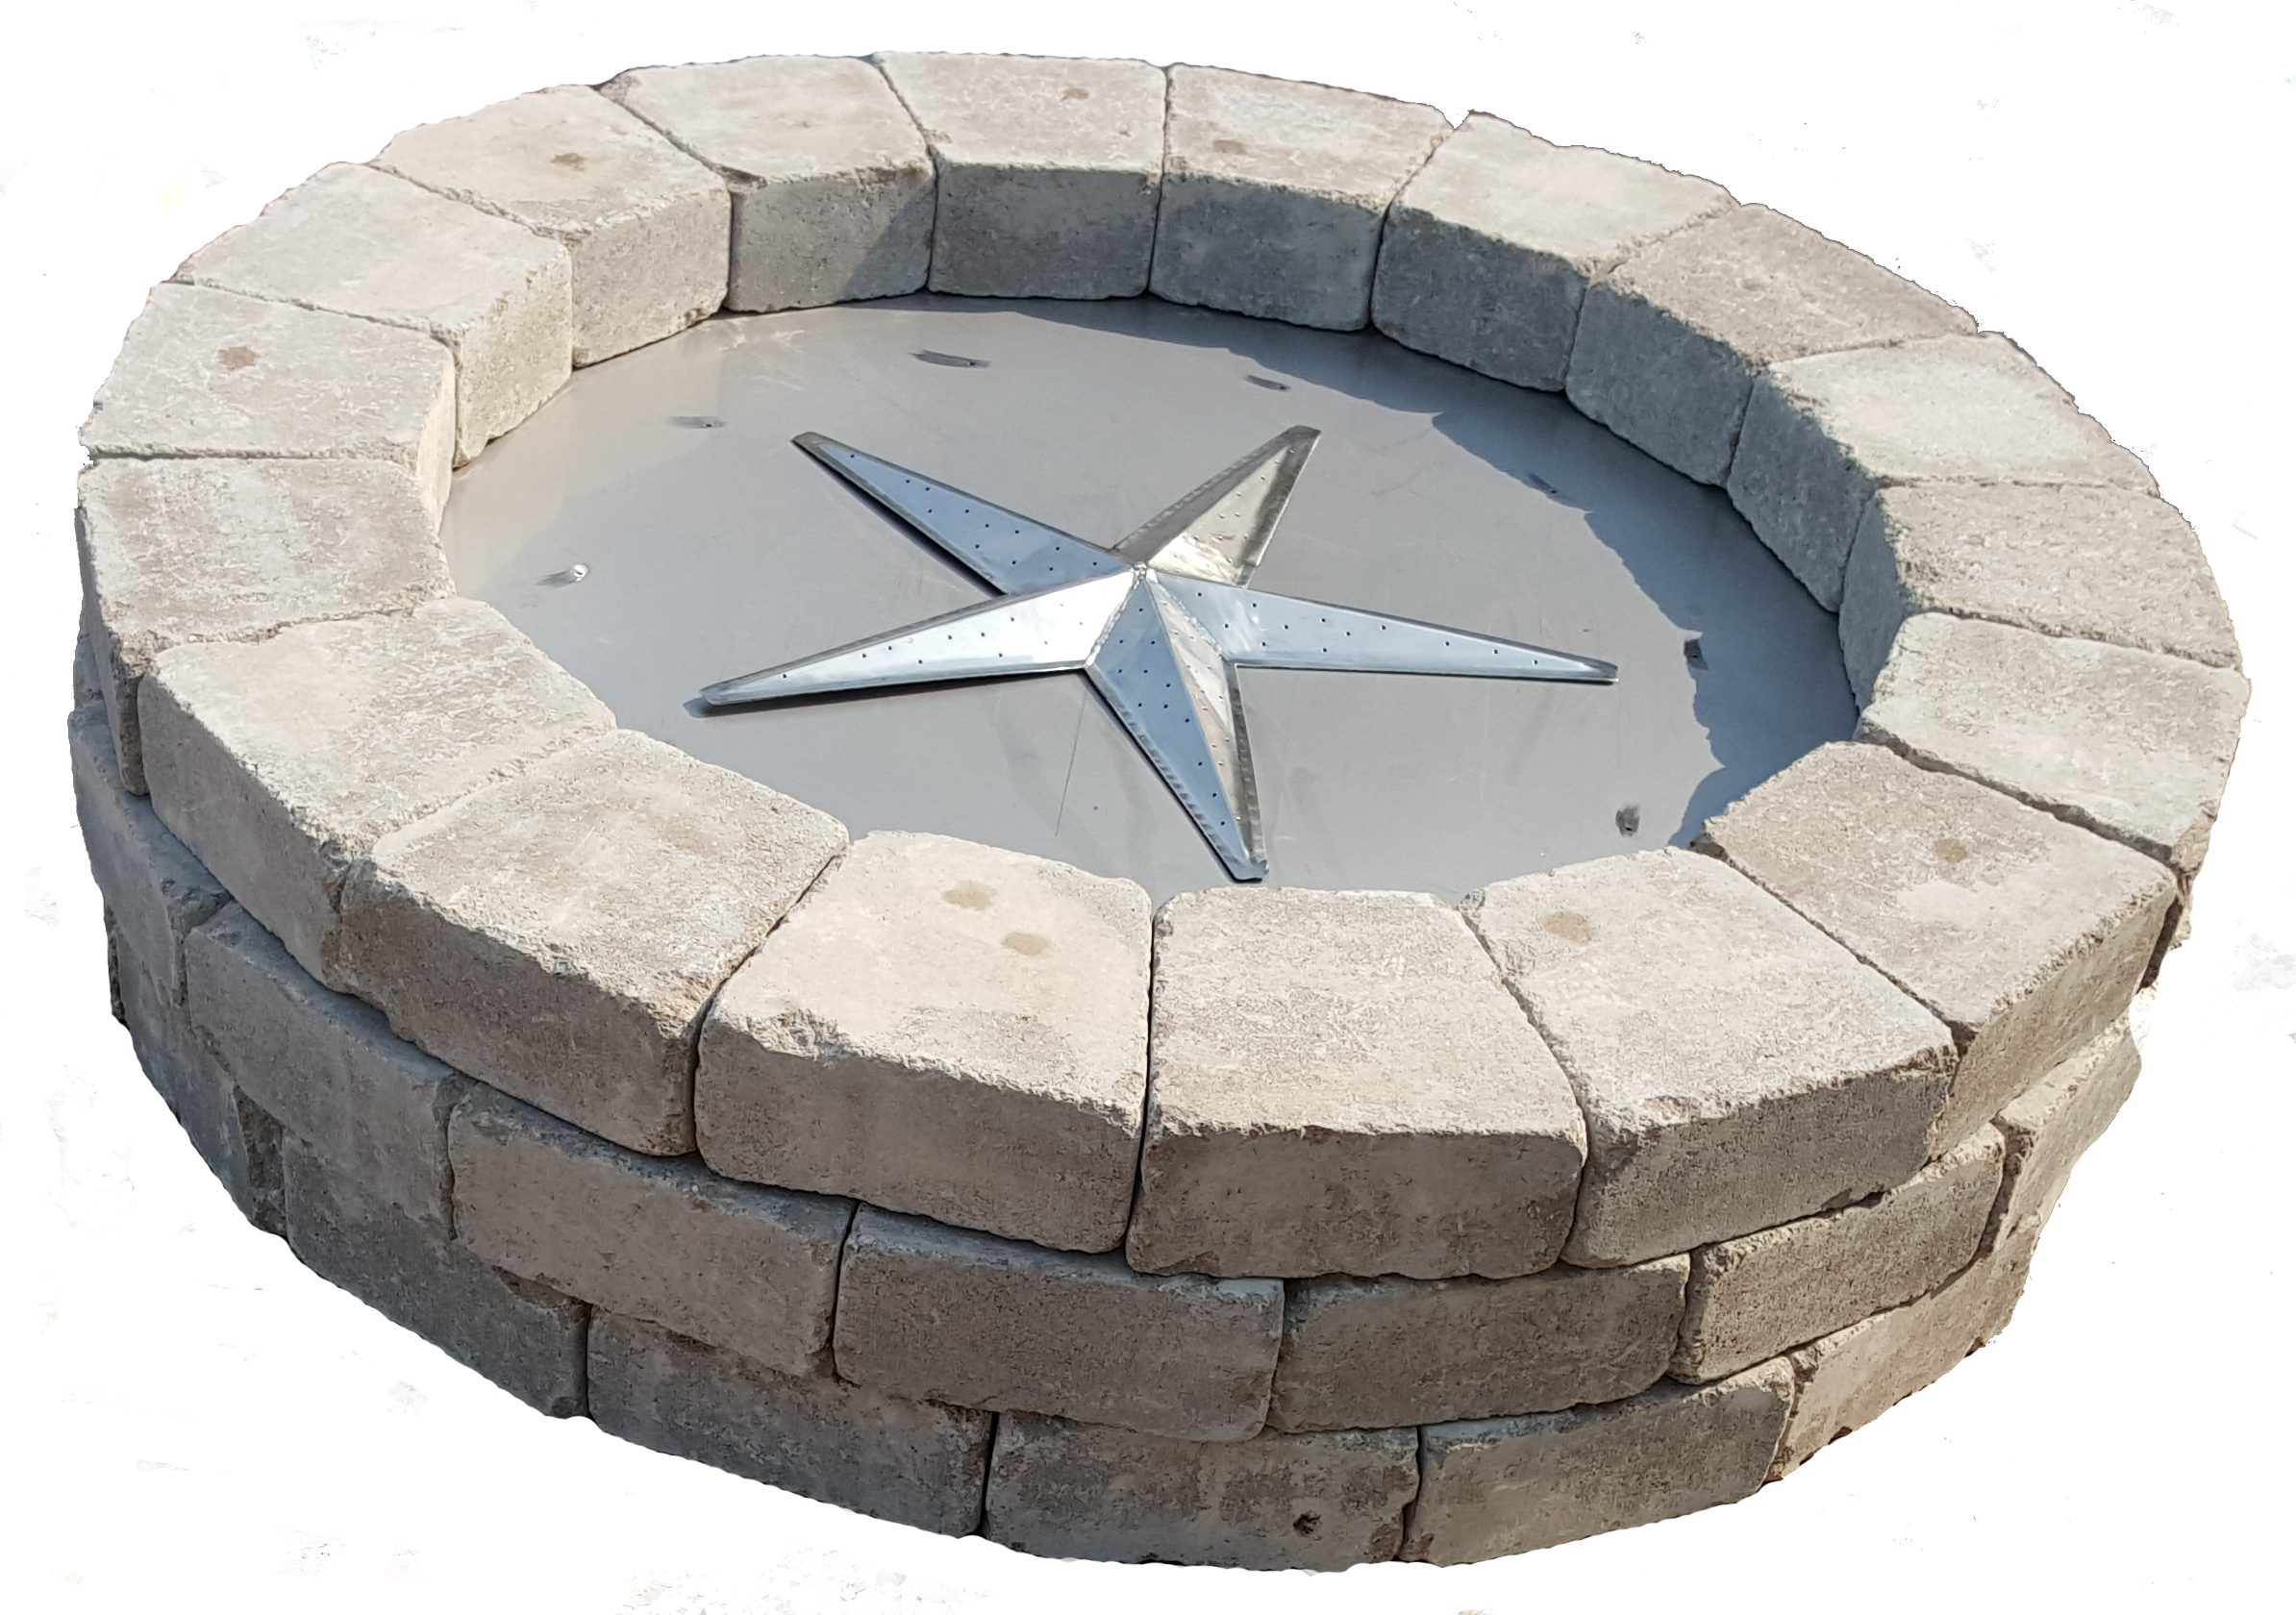 round fire pit kit burner techo bloc unilock belgard reading rock fireboulder firestar Top Result 50 Awesome Gas Fire Pit Cover